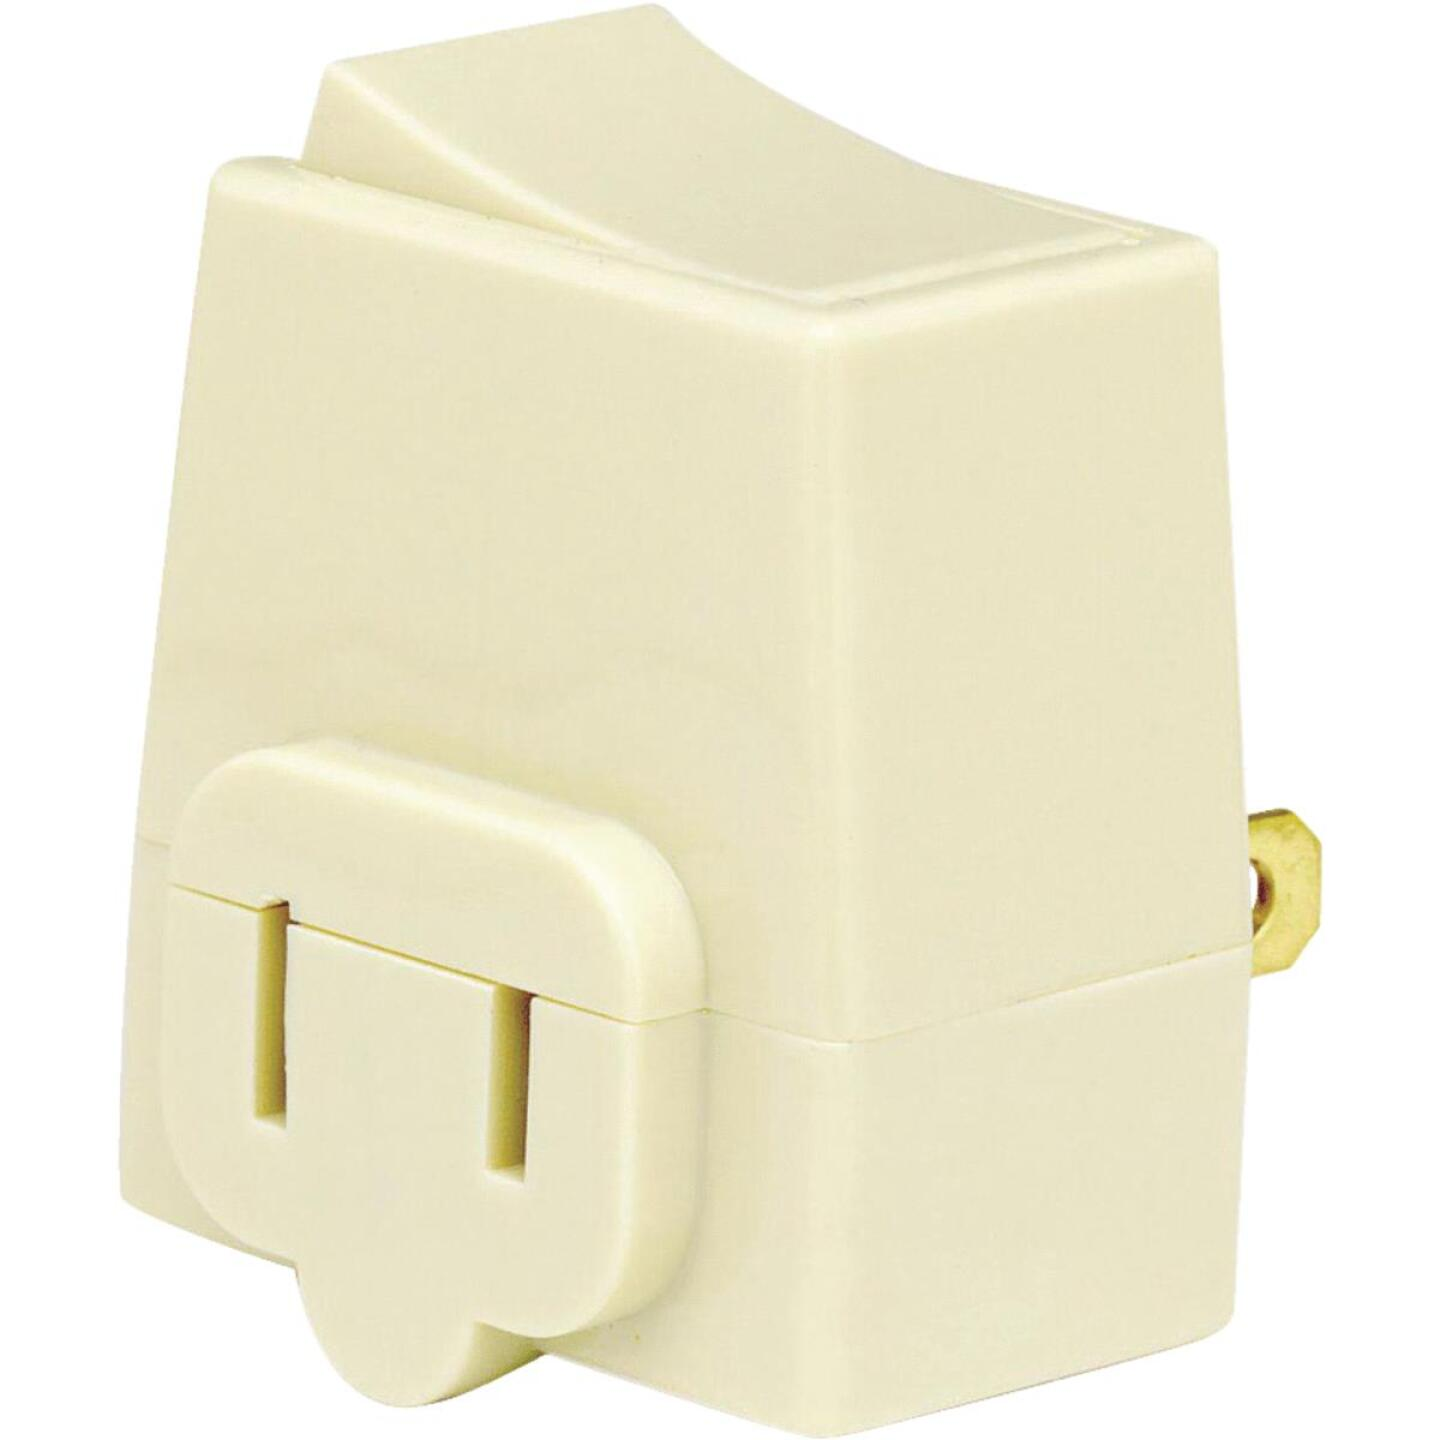 Leviton Ivory 13A Plug-In Switch Adapter Image 2